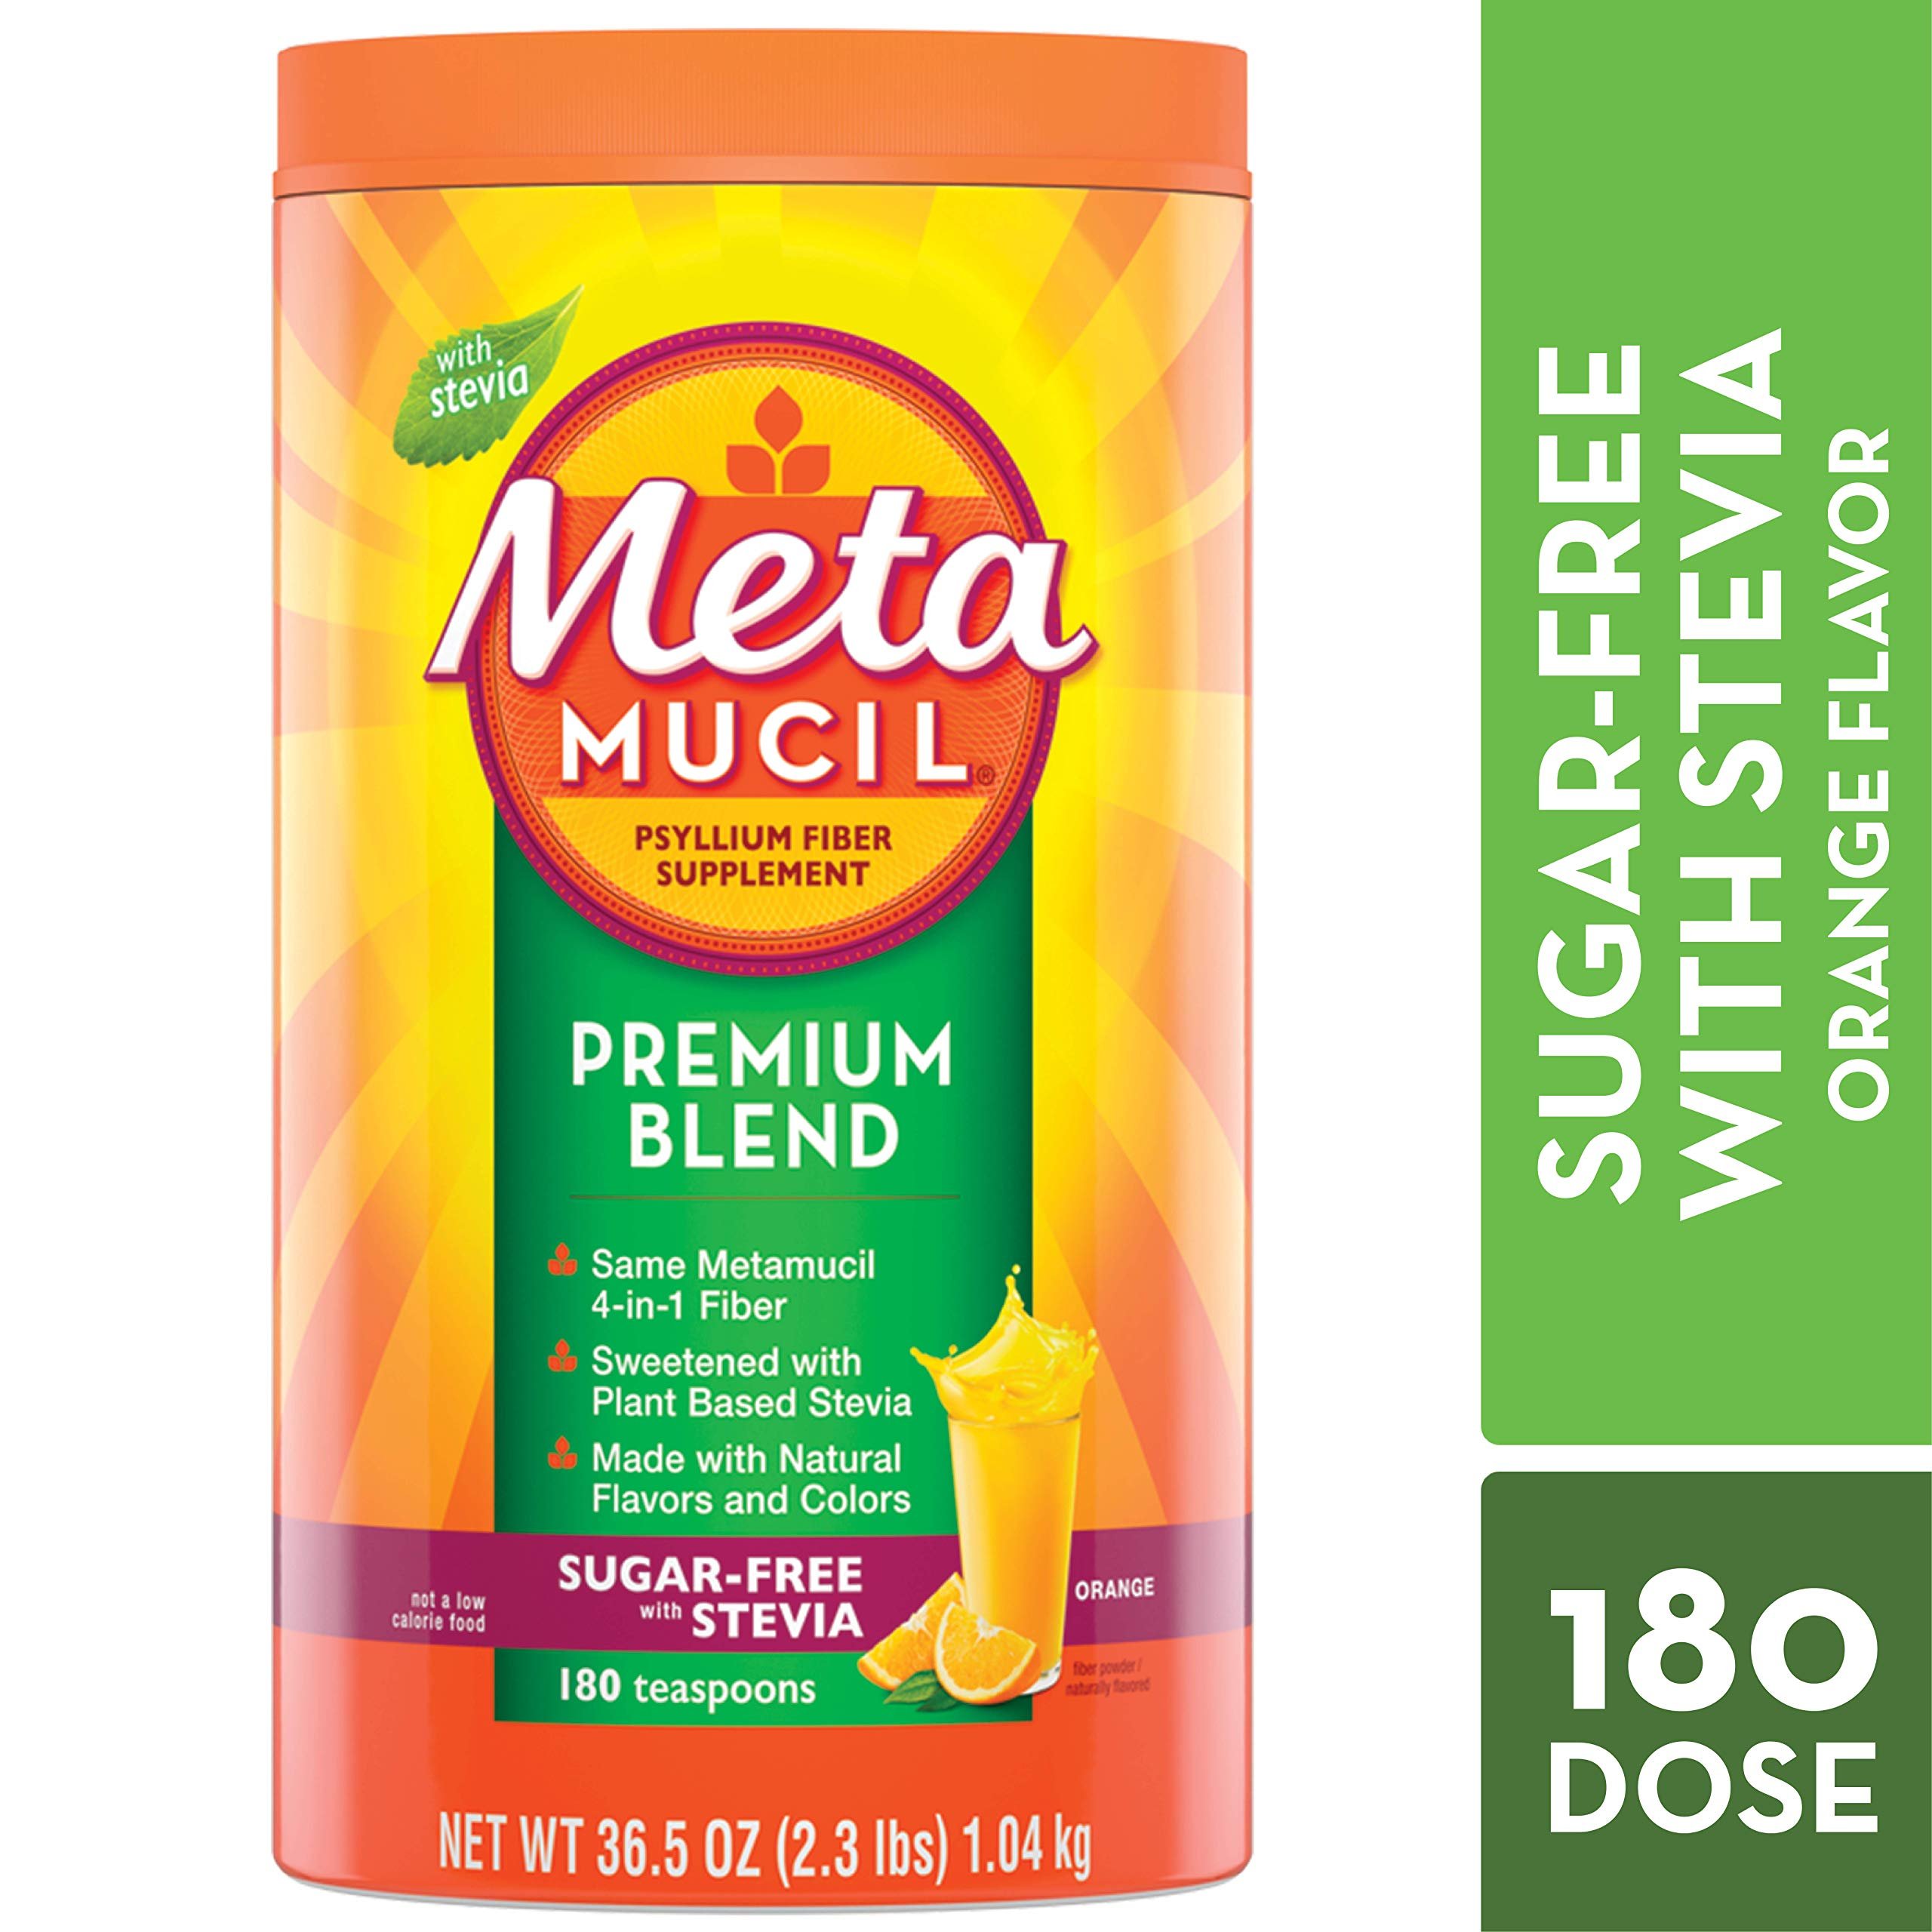 Metamucil Fiber, Premium Blend, Psyllium Fiber Powder Supplement, Sugar-Free with Stevia, Natural Orange Flavor, 180 Servings, 36.5 Ounce by Metamucil